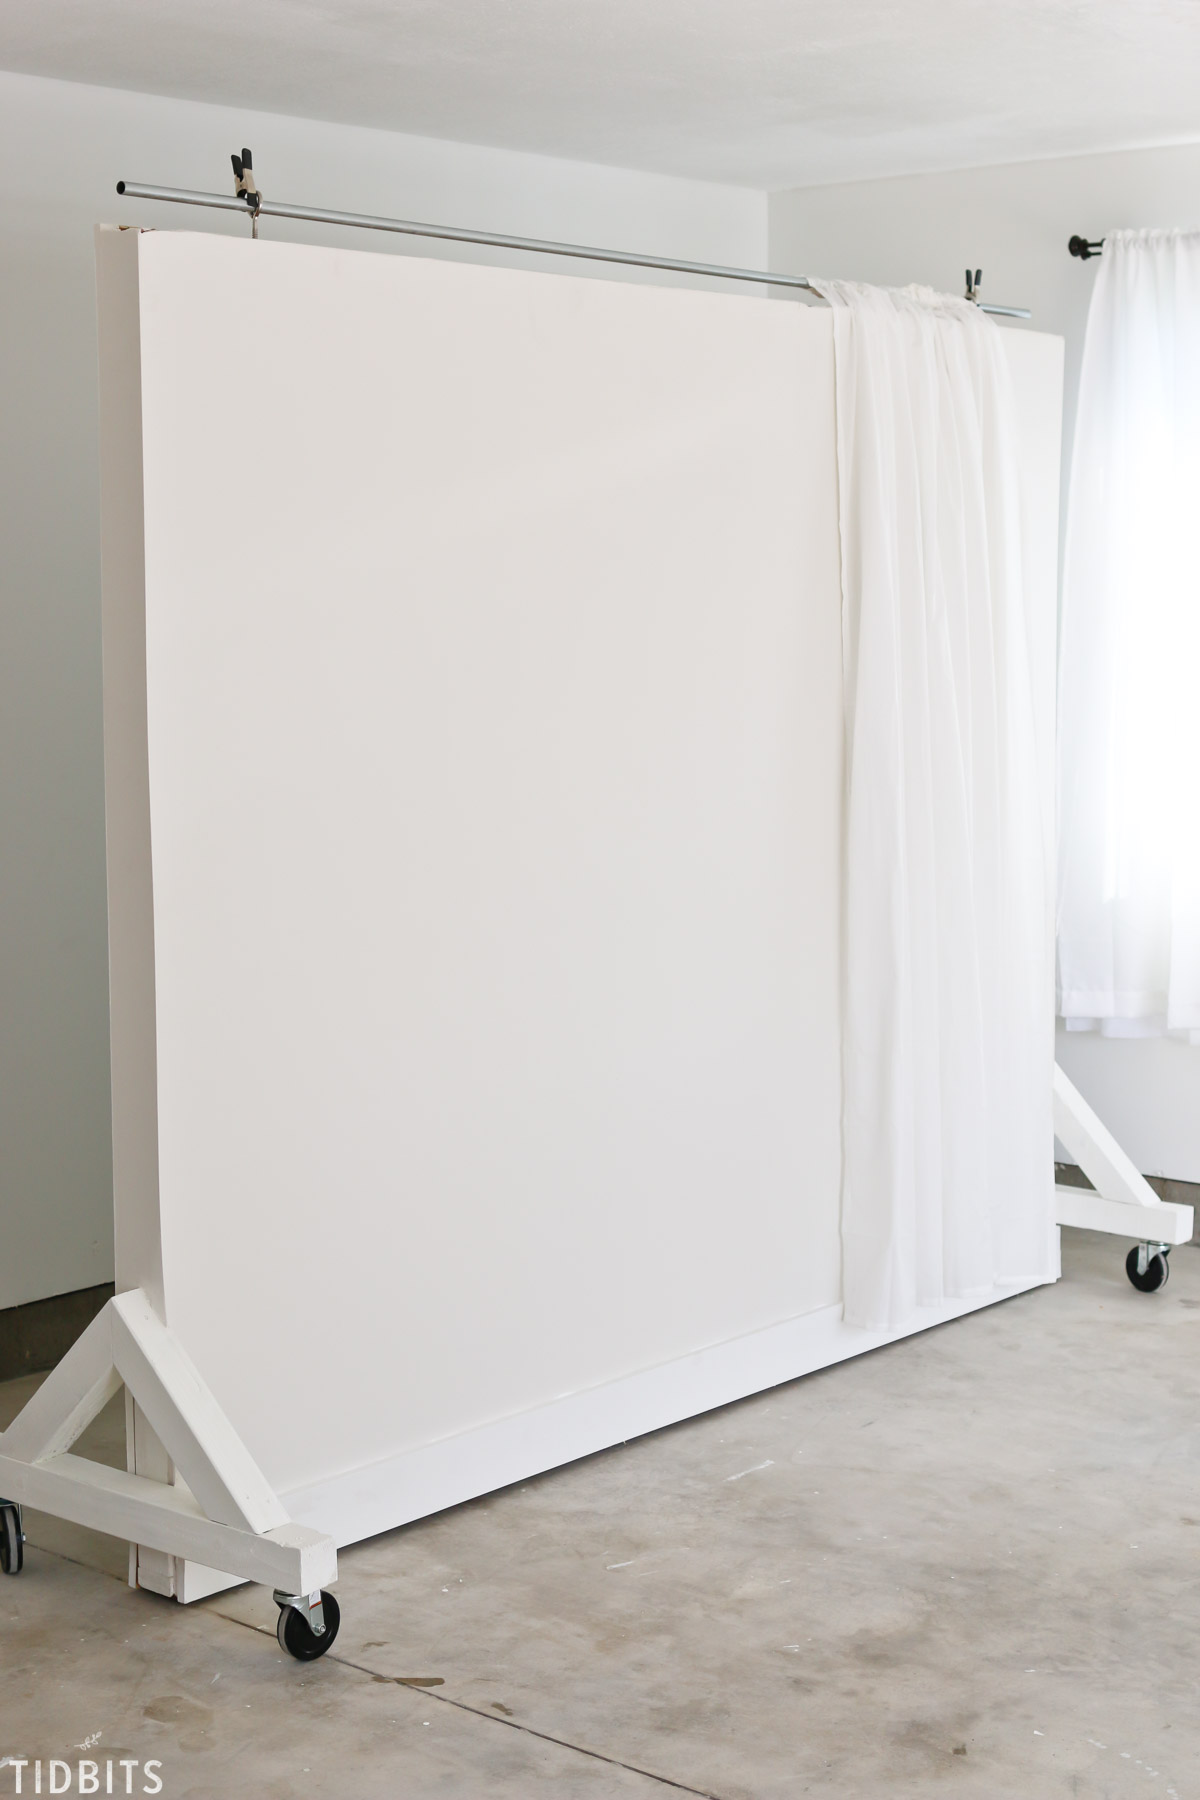 Wall on wheels for photography studio